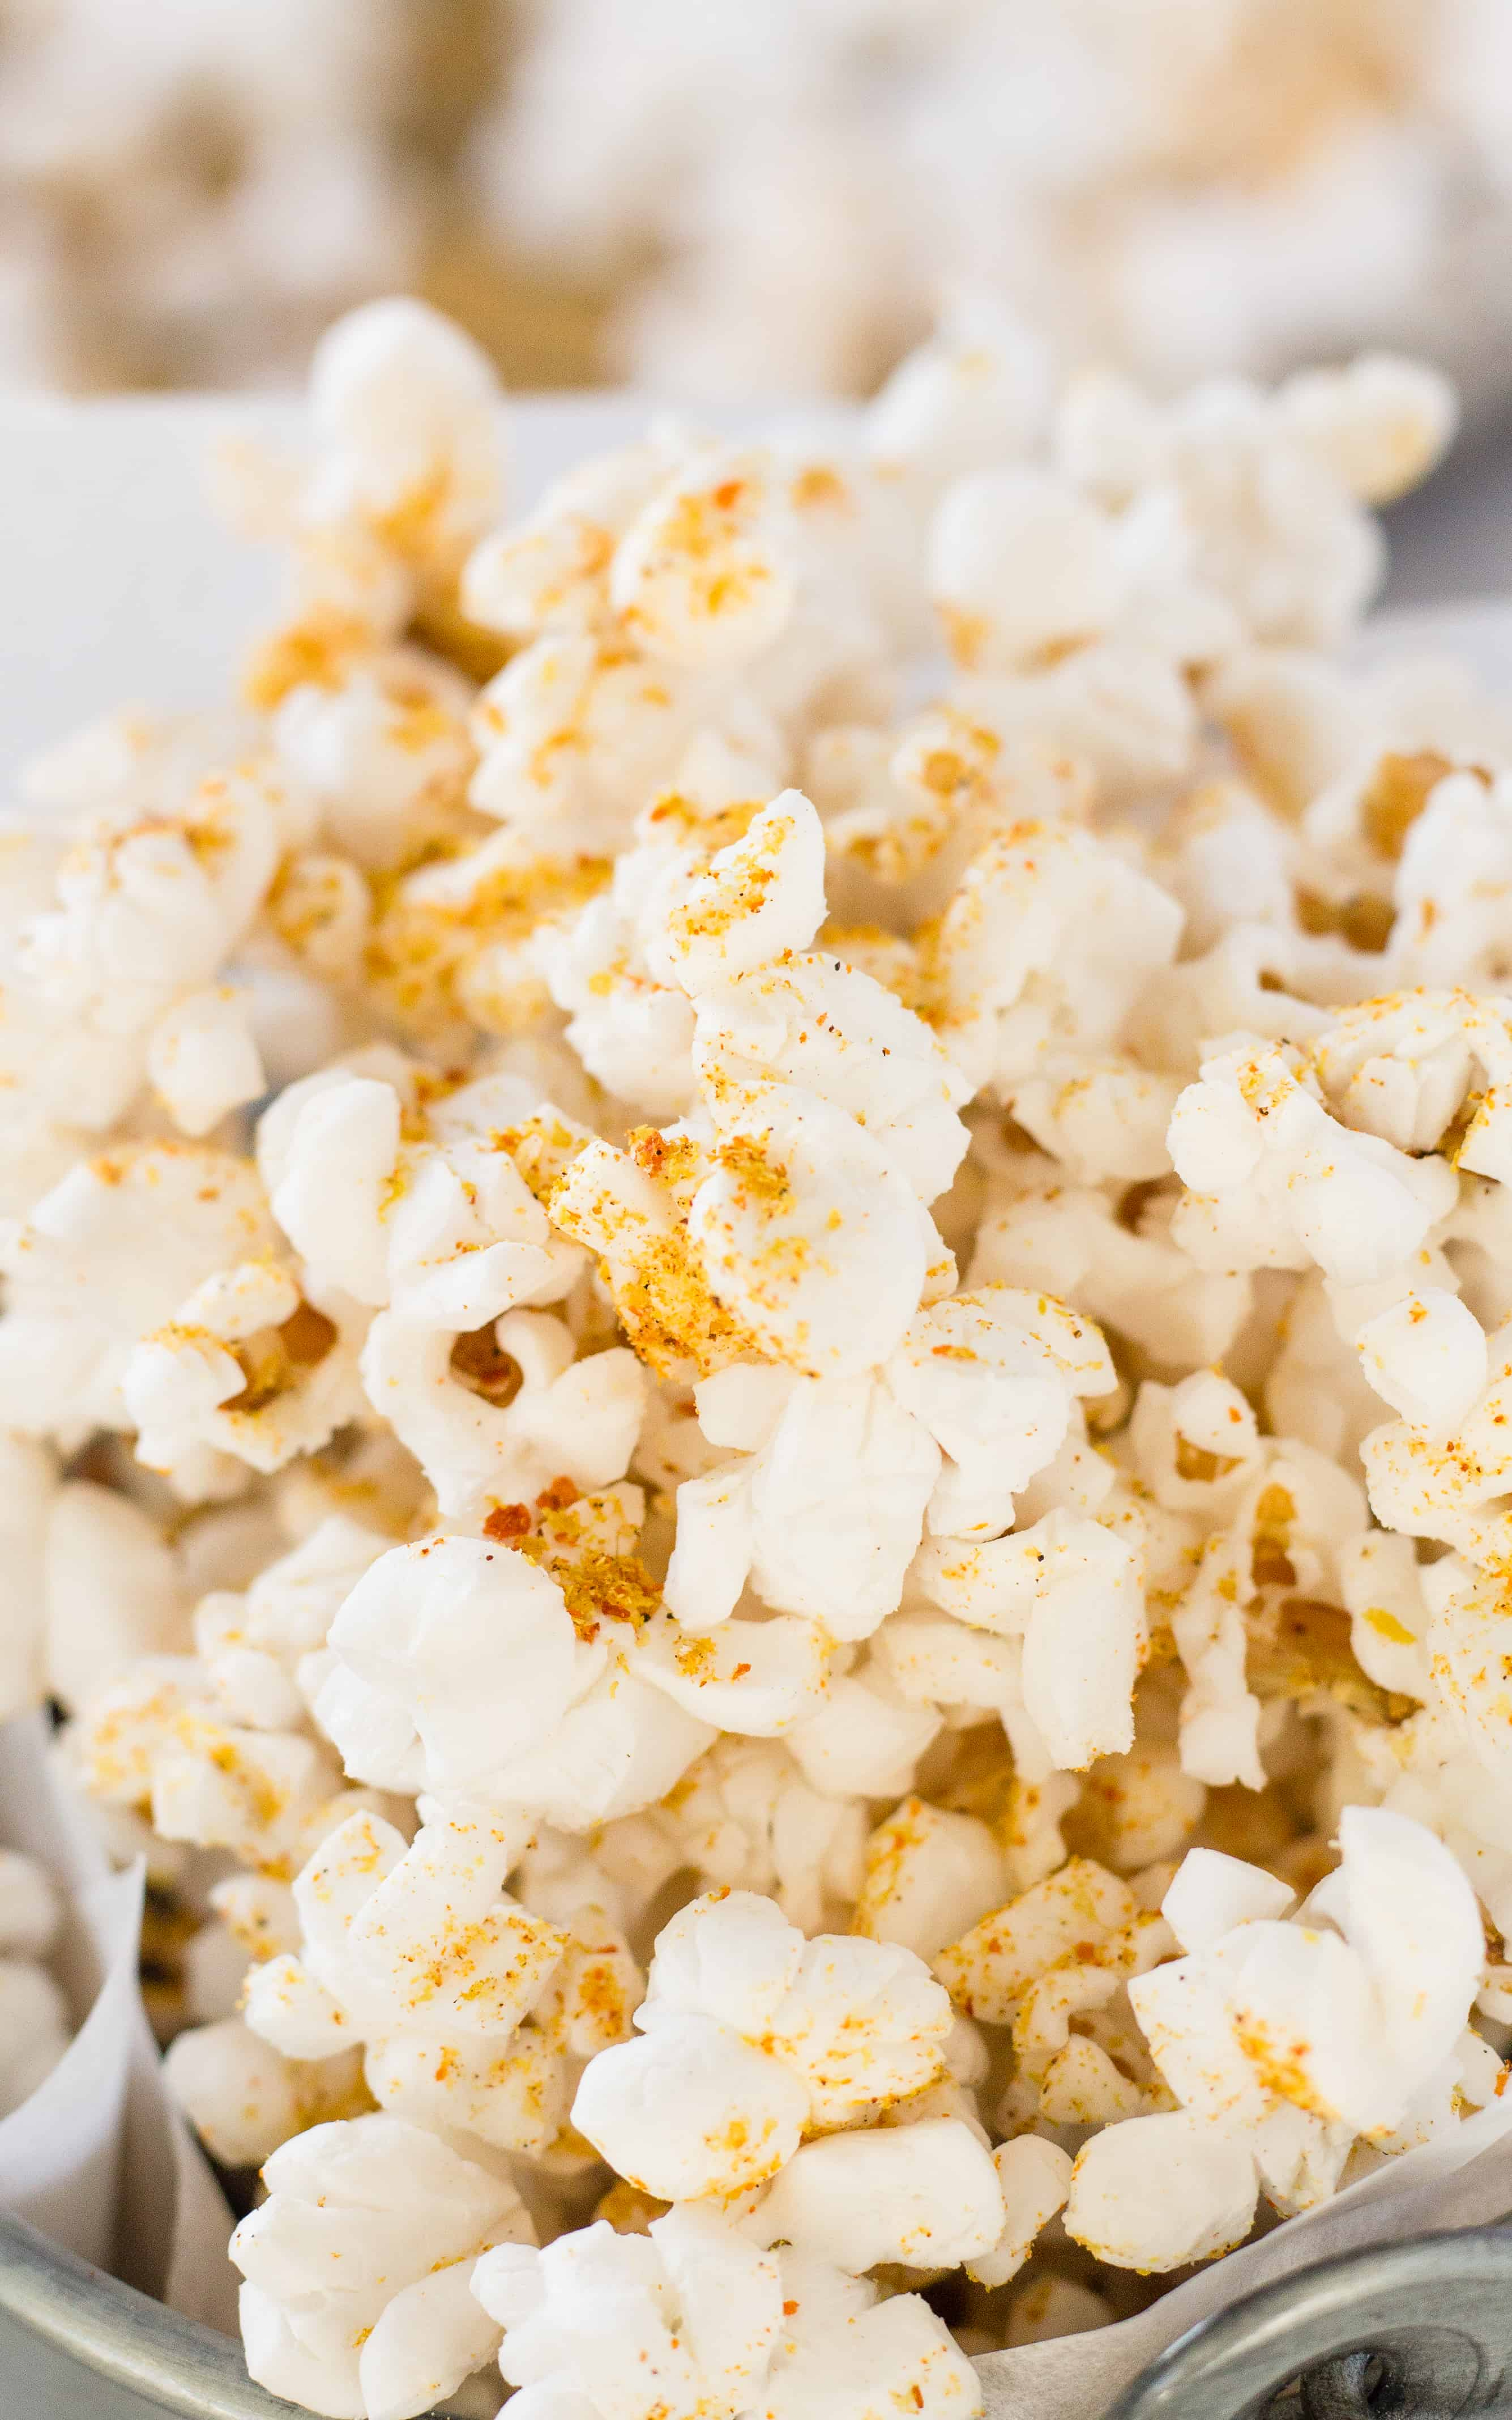 Use as little or as much Doritos Seasoning on this Spicy Nacho Popcorn